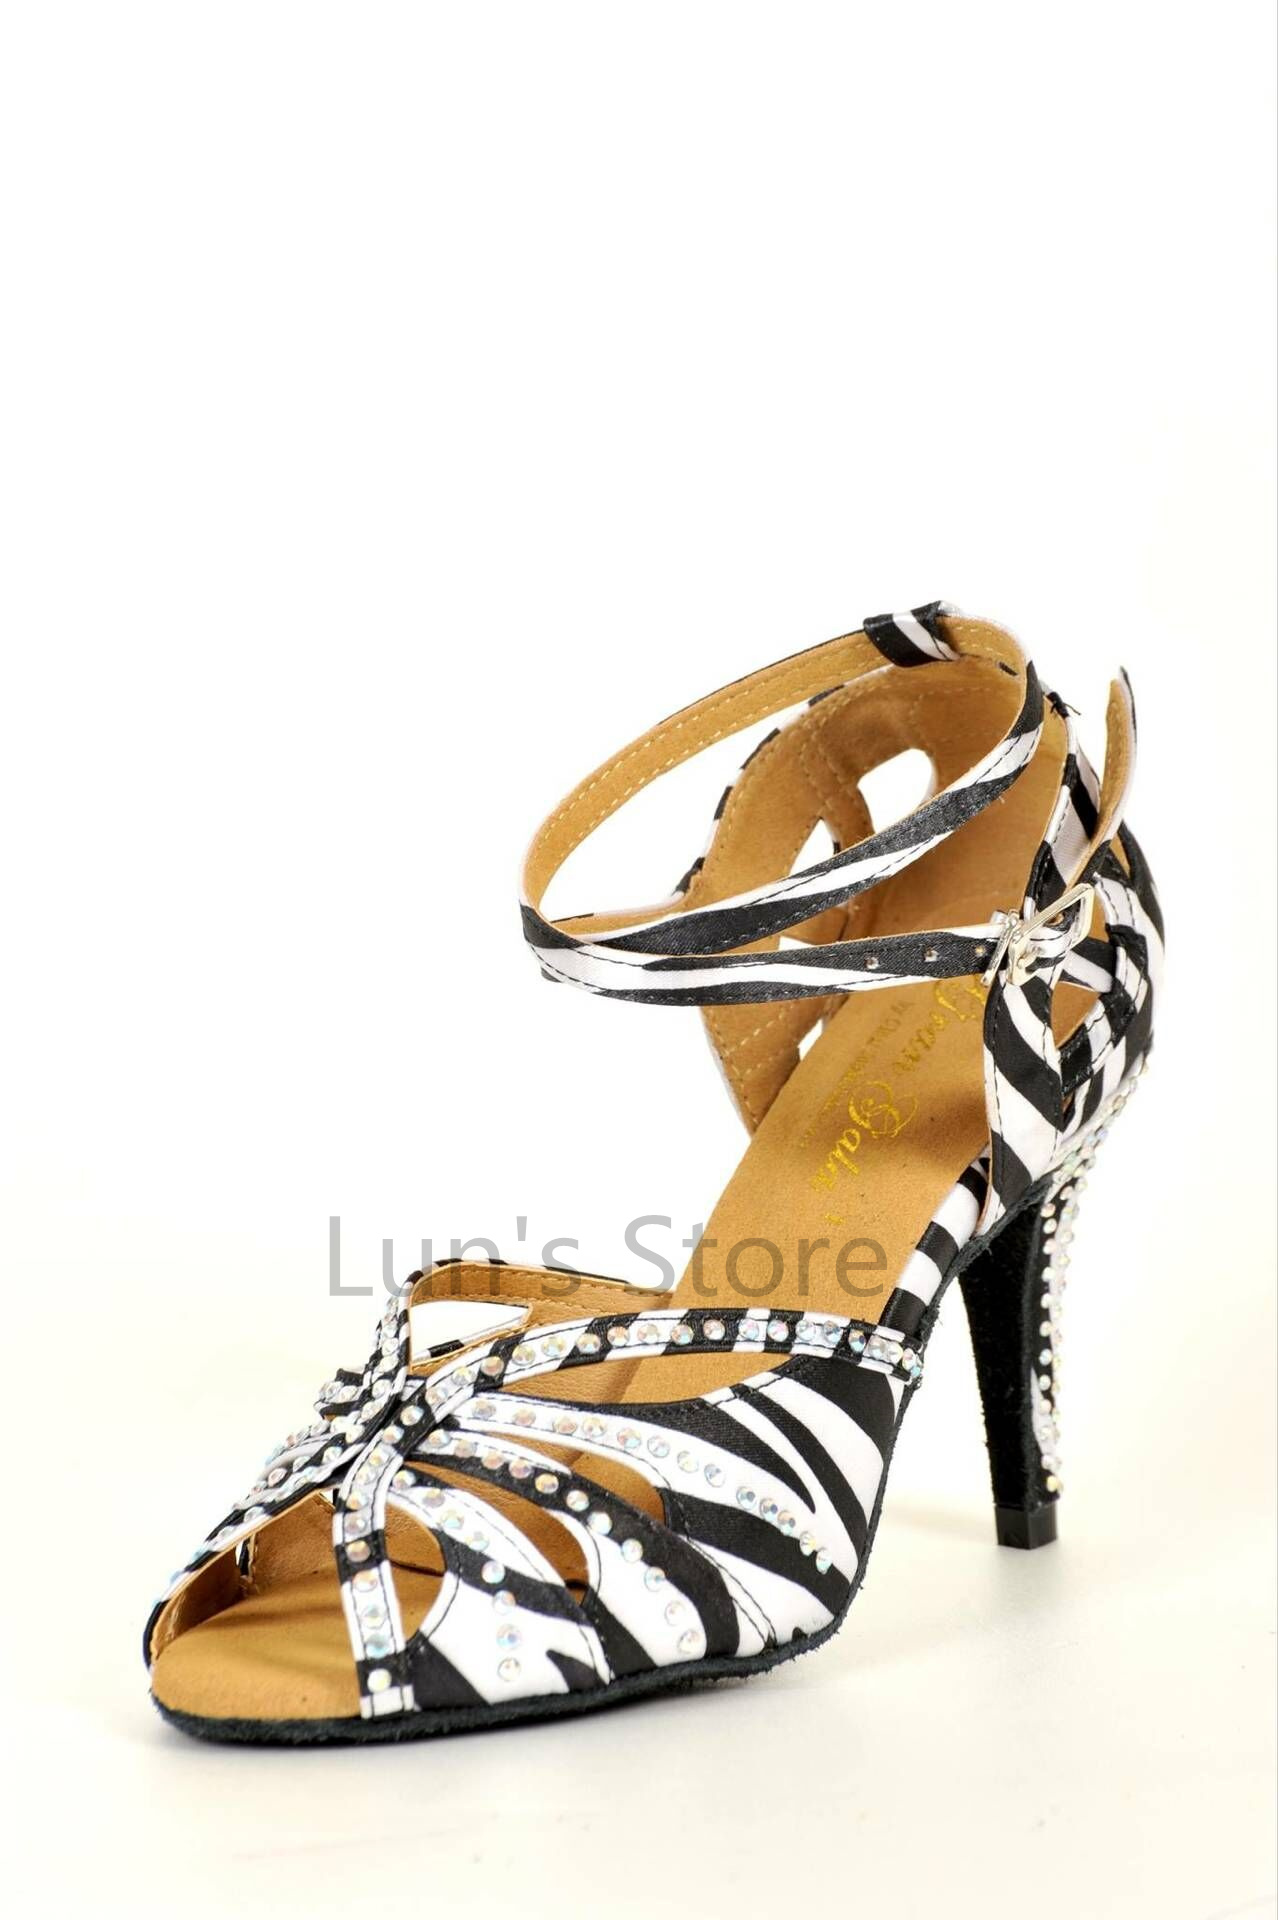 New Ladies Zebra Satin Rhinestone Latin Ballroom Dance Shoes Salsa Dance Shoes Tango Bachata Dance Shoes ALL SIZE